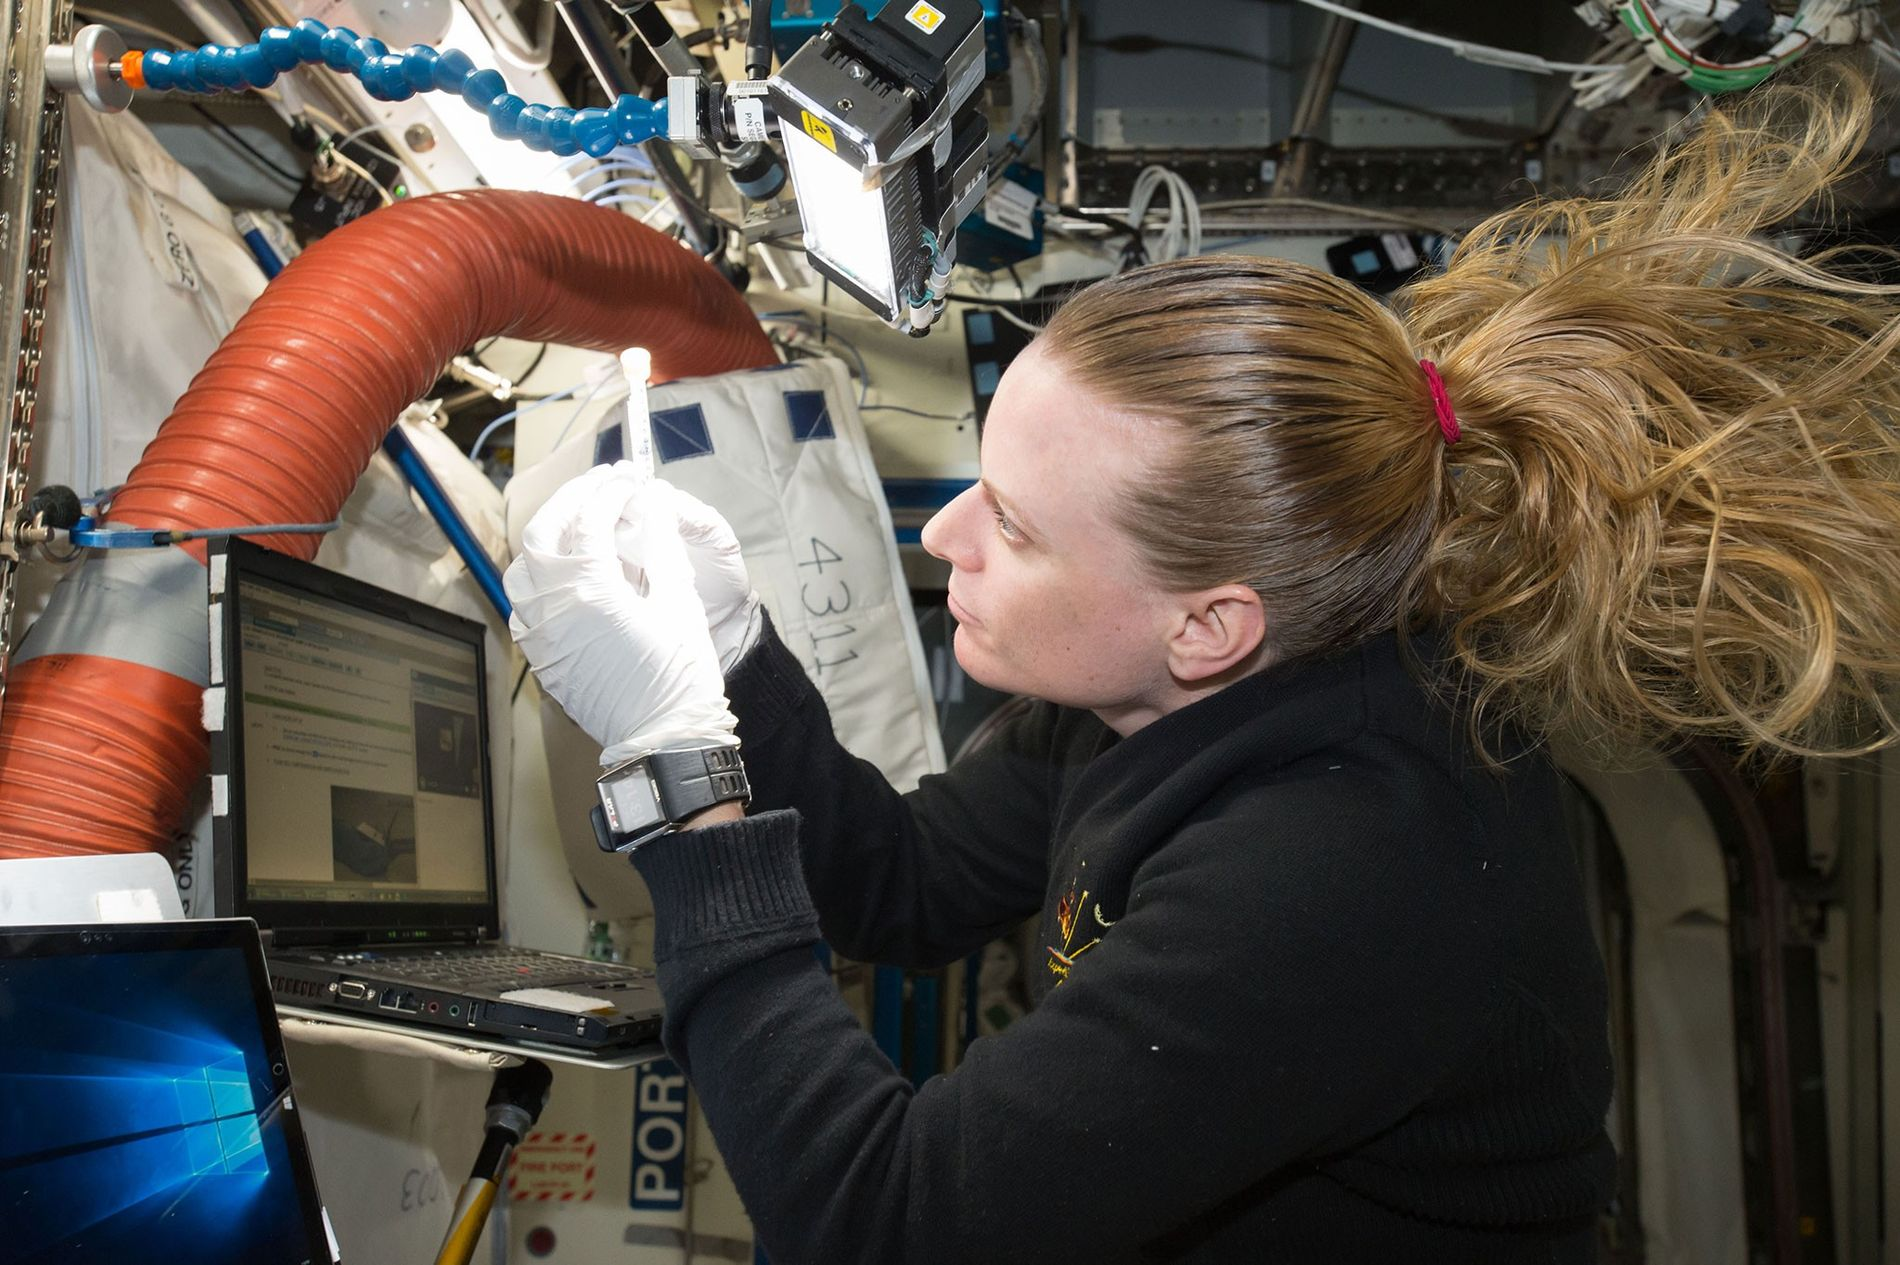 NASA Astronaut Kate Rubins works on the Biomolecule Sequencer experiment aboard the International Space Station. A ...